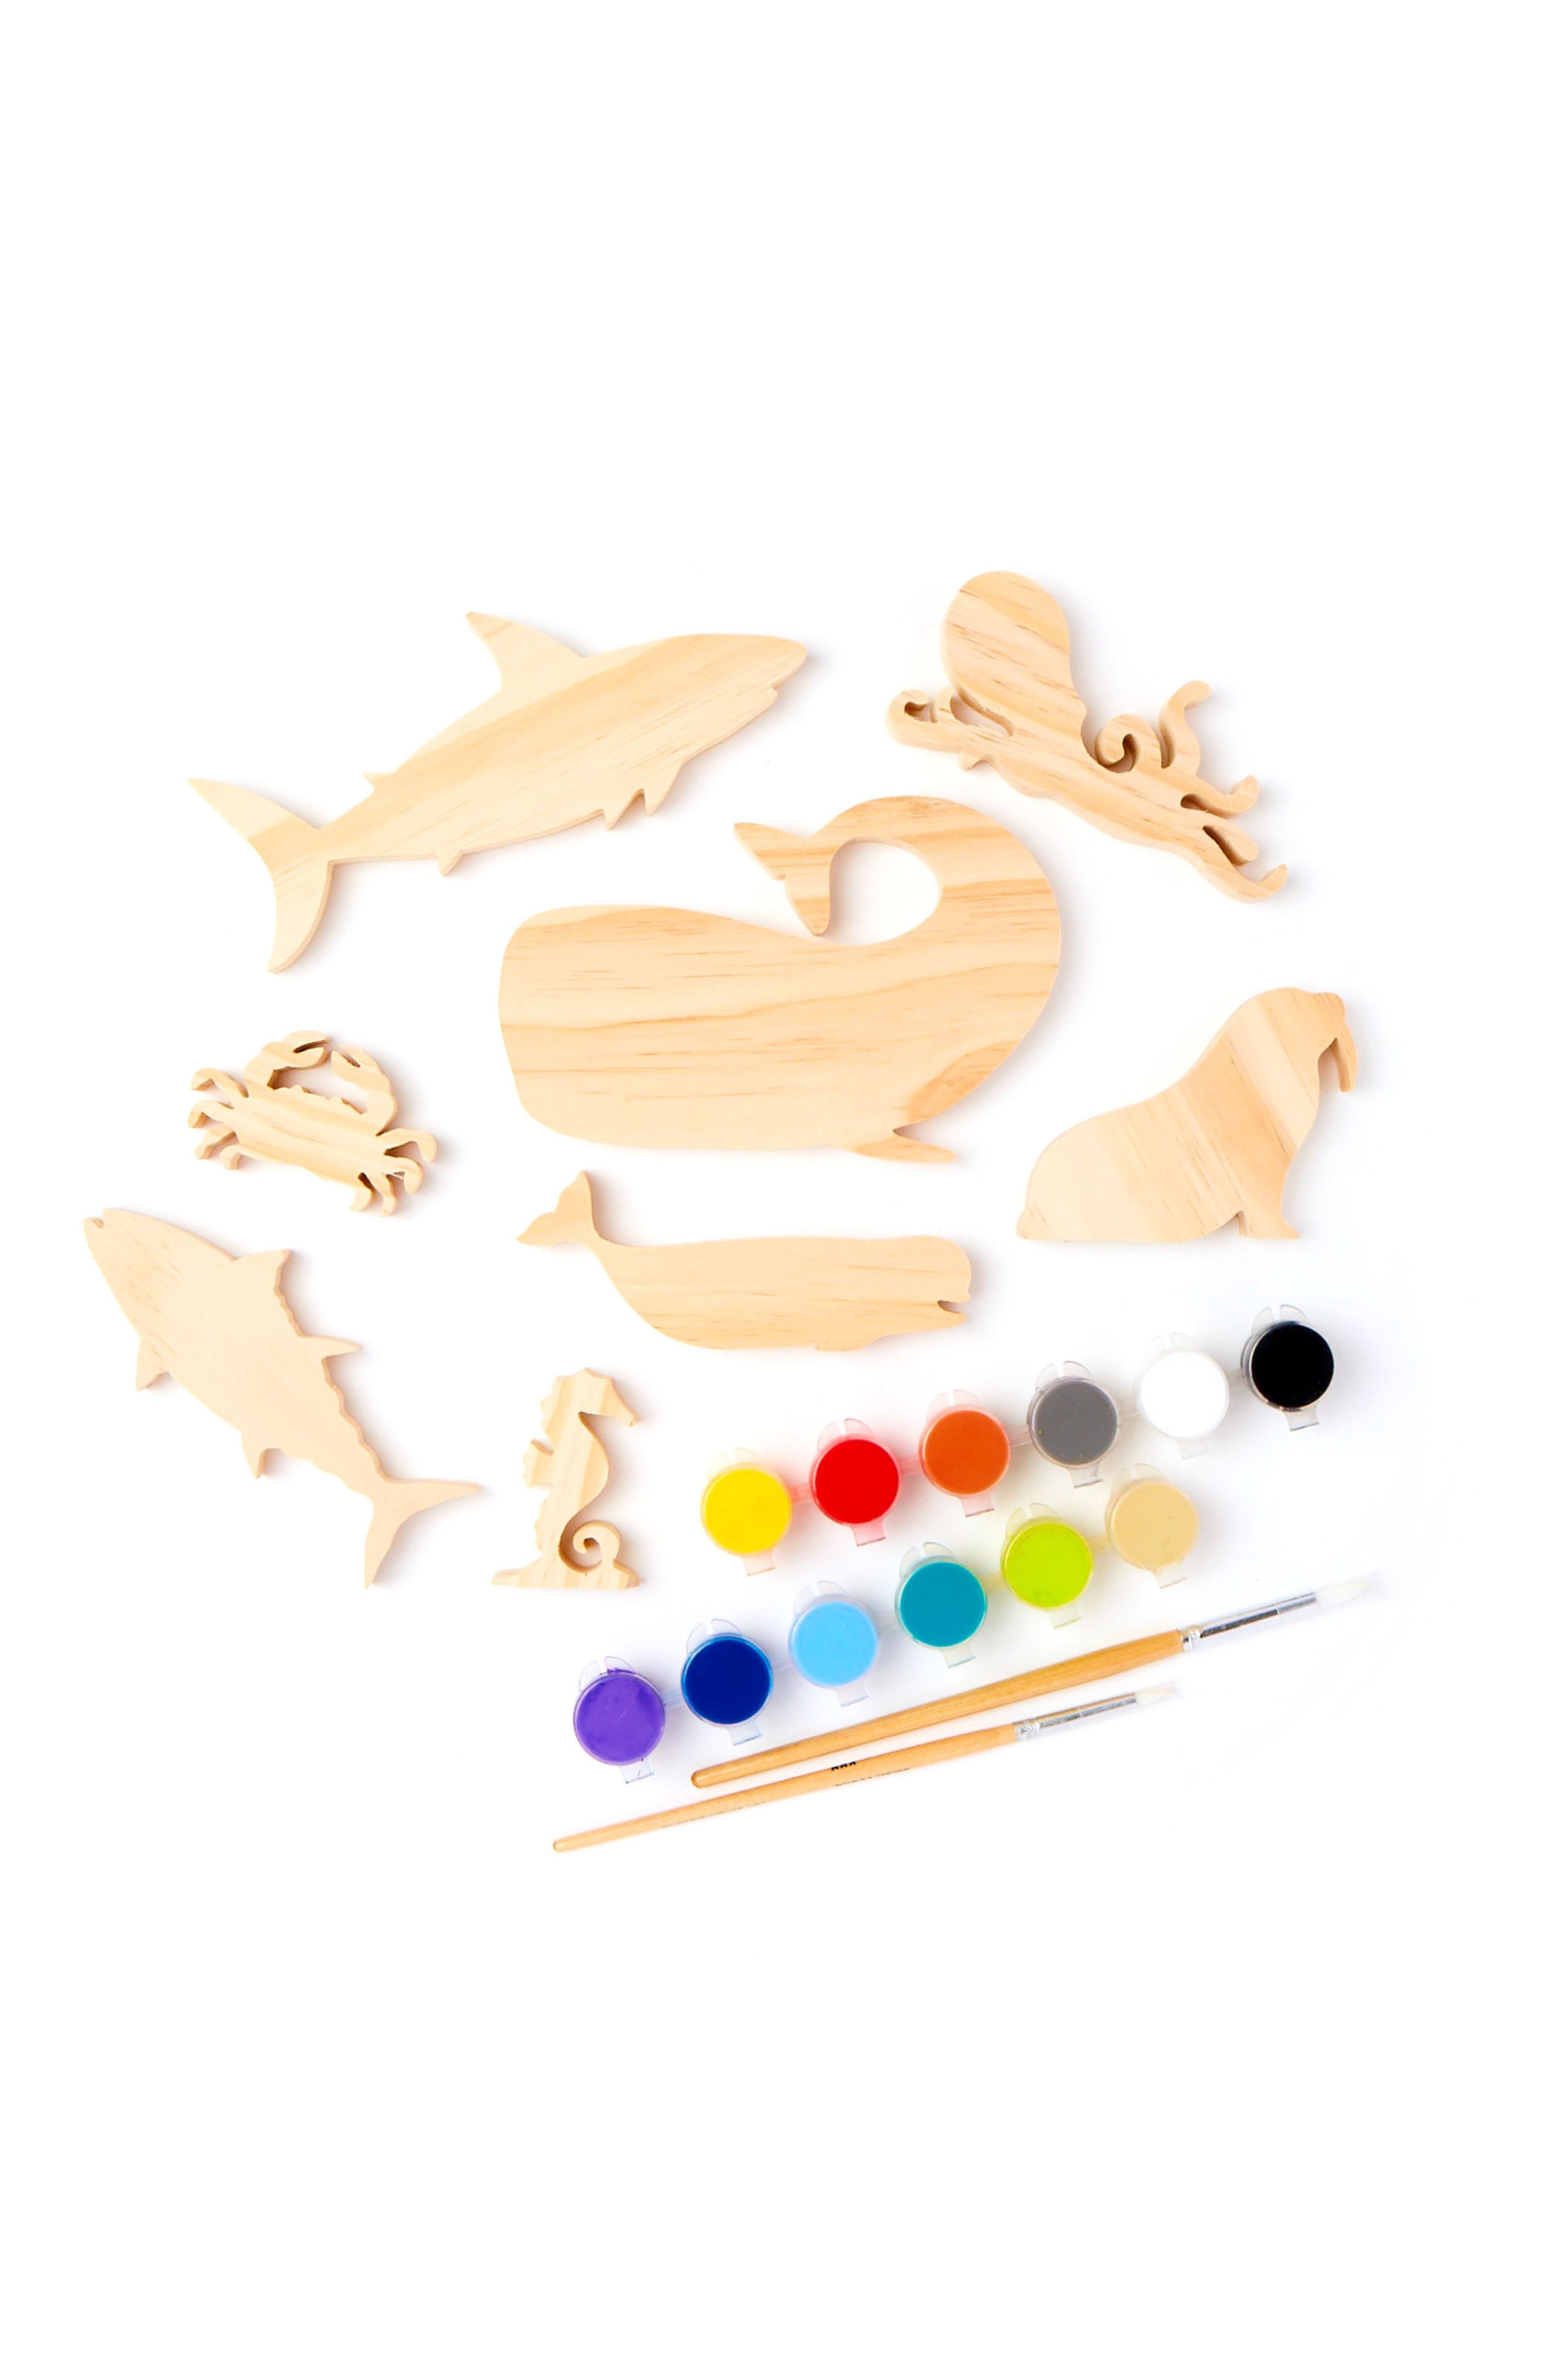 12-Piece Aquatic Adventure Toy Painting Kit,                             Alternate thumbnail 2, color,